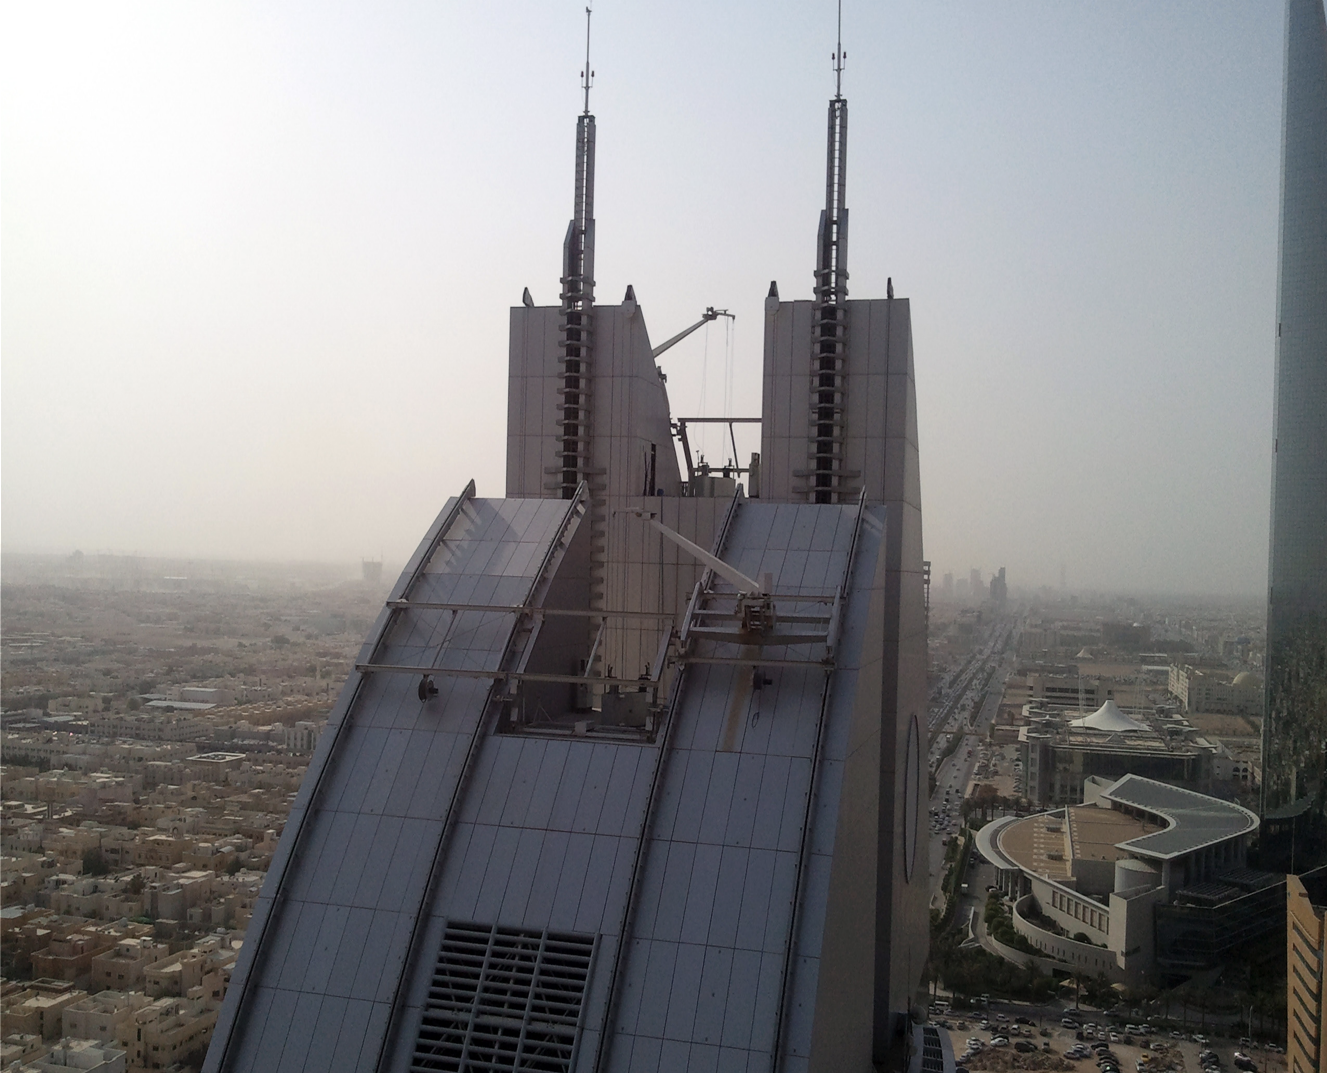 Above: Al Anoud Tower I BMU's utilize a hydraulic platform that serves as a crossing bridge between the 2 main building elevations as well lowering the BMU into hidden parking position.